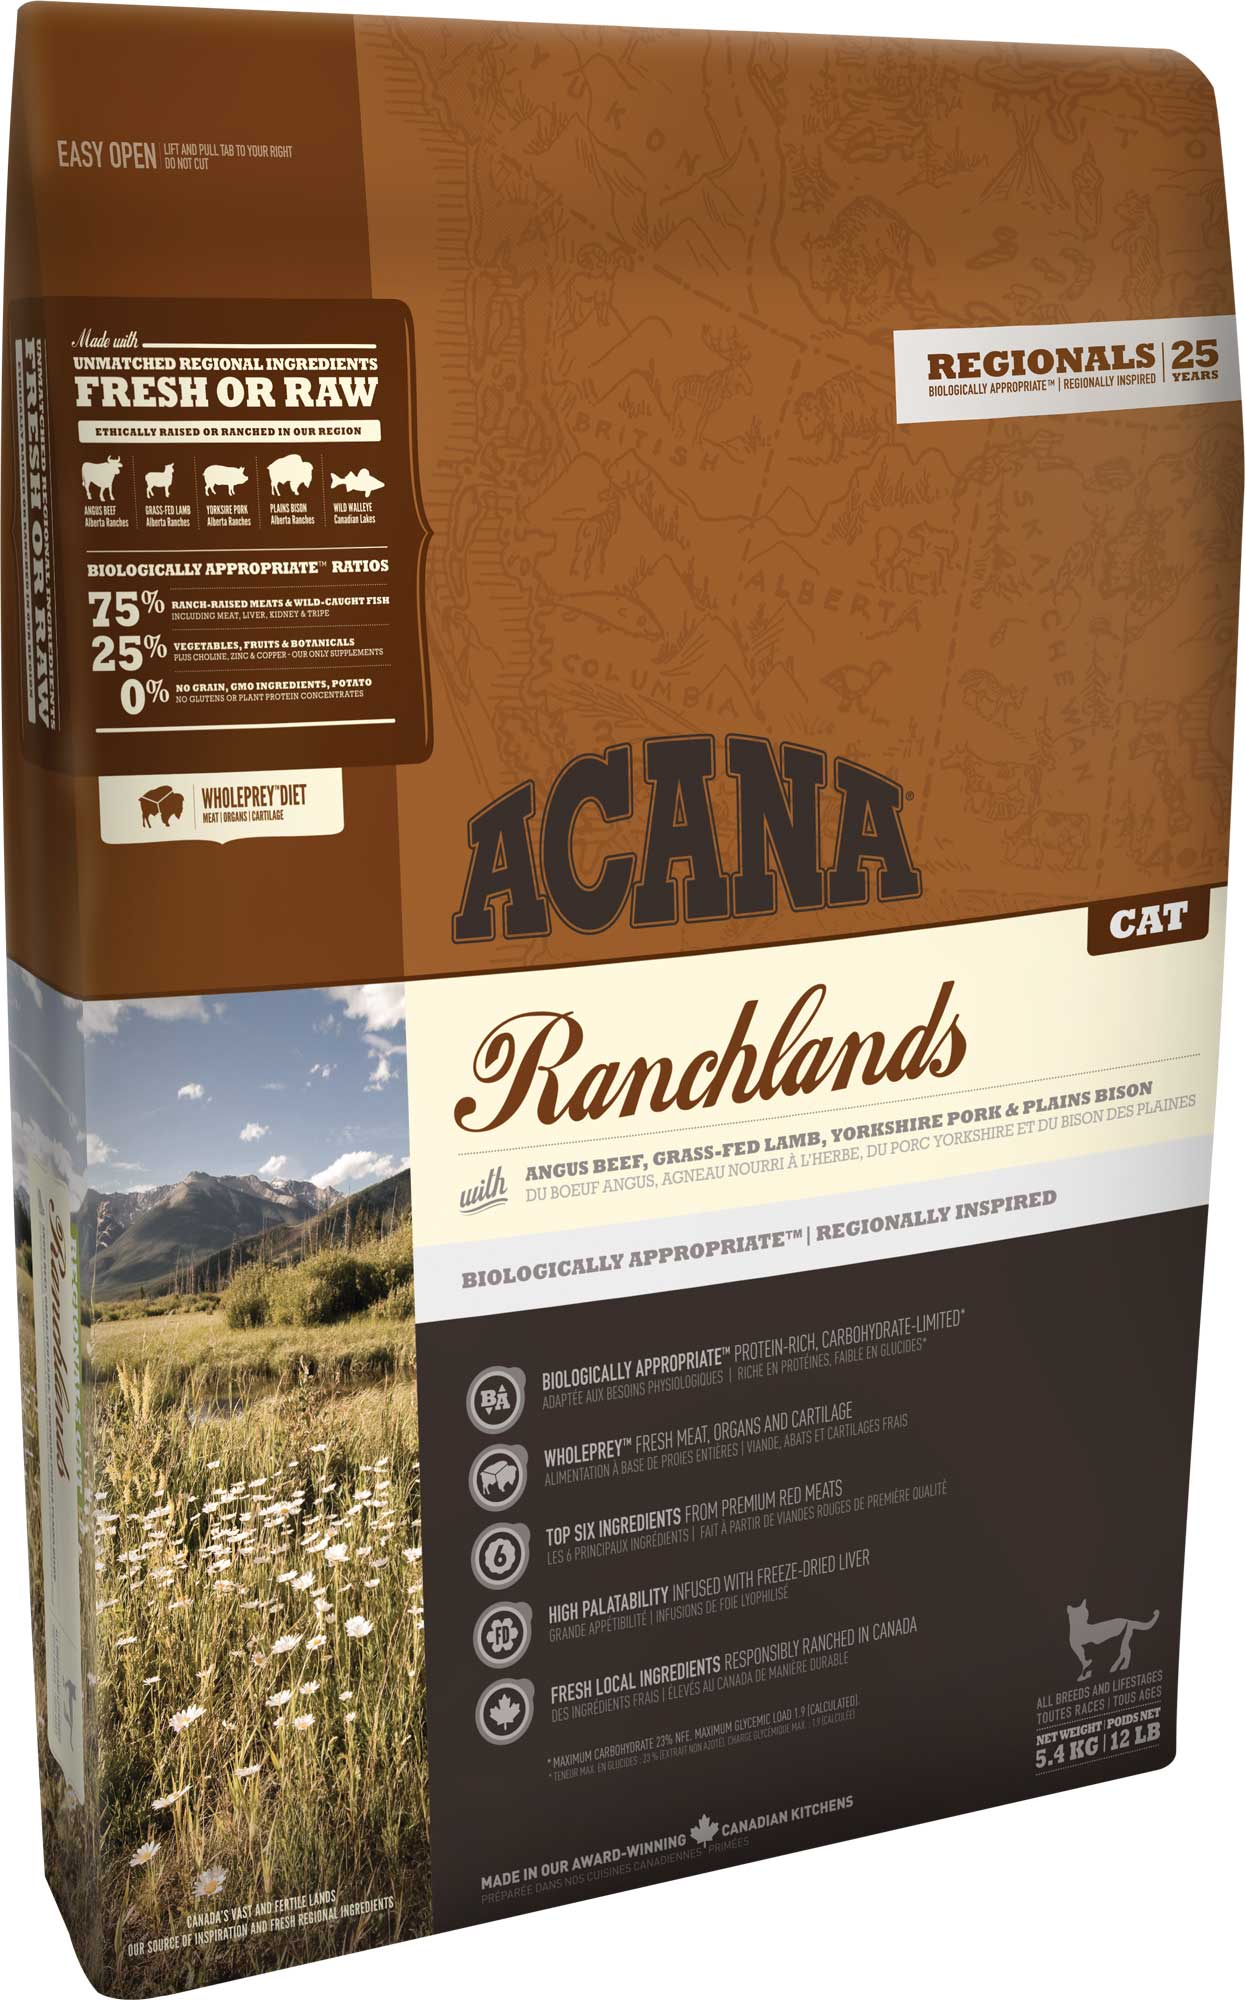 Bilde av Acana Cat Ranchlands 340g